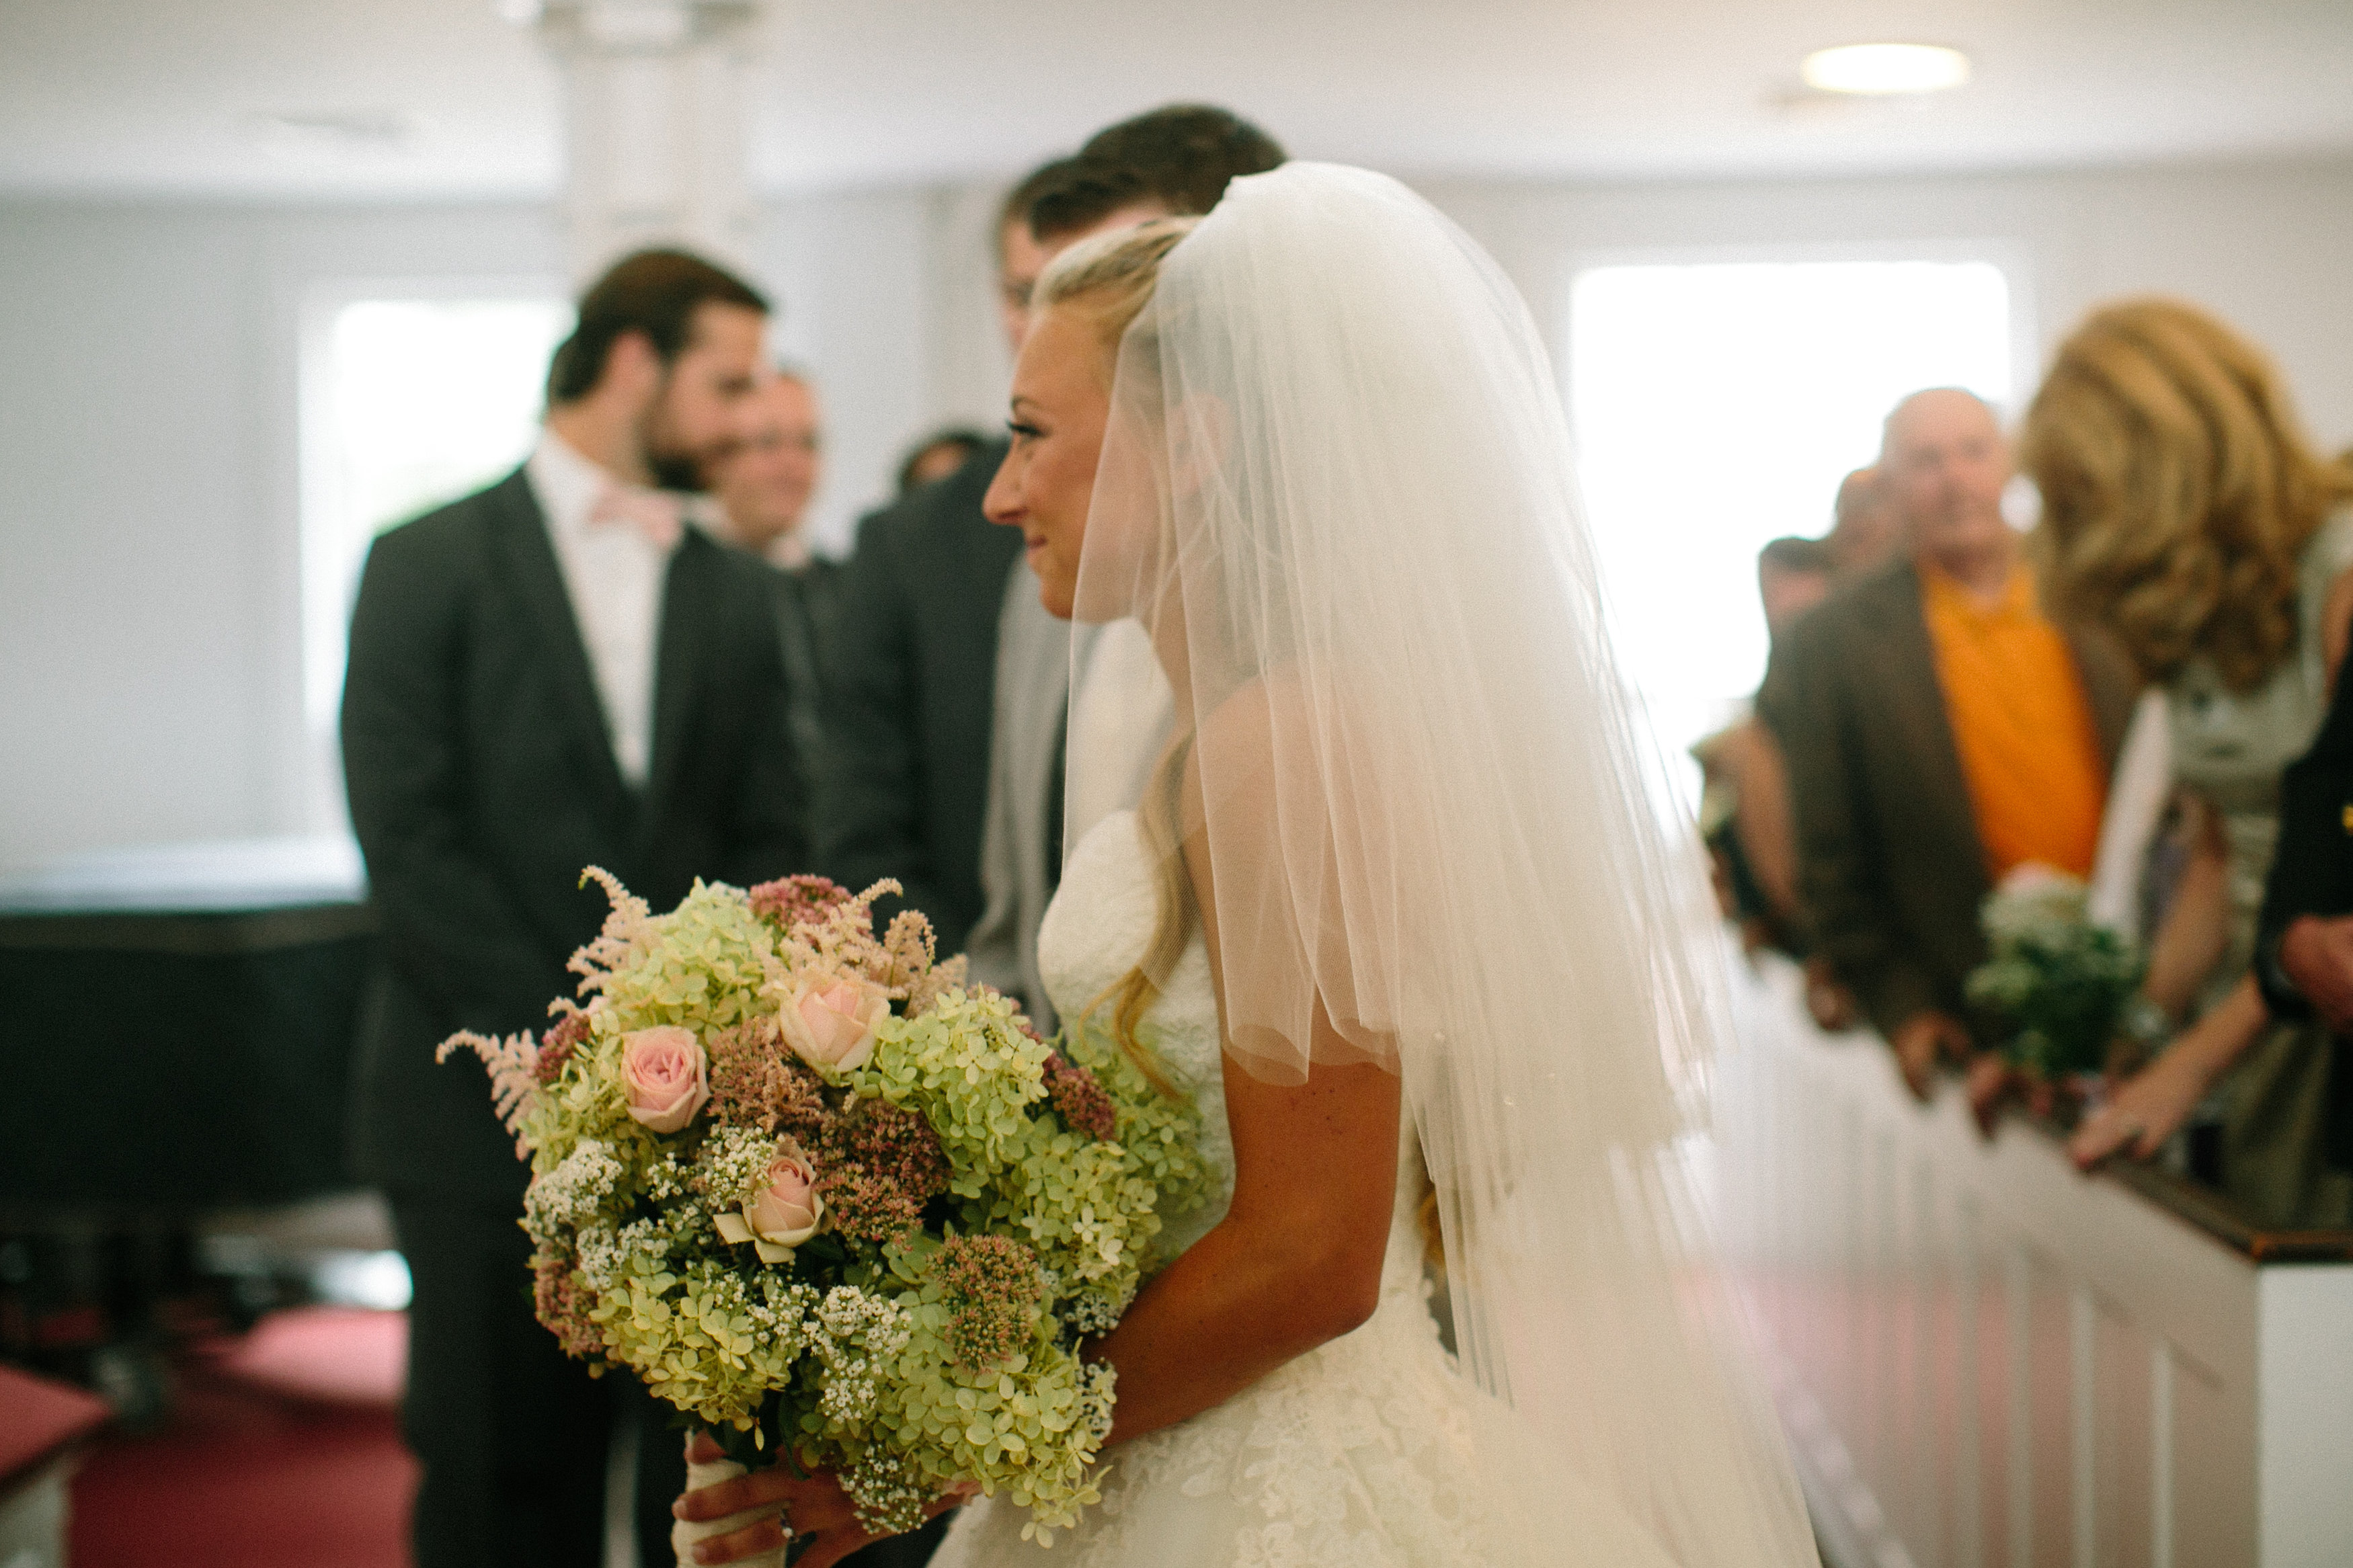 Stephanie&Dan-Wedding-LindsayMaddenPhotographyIV-11